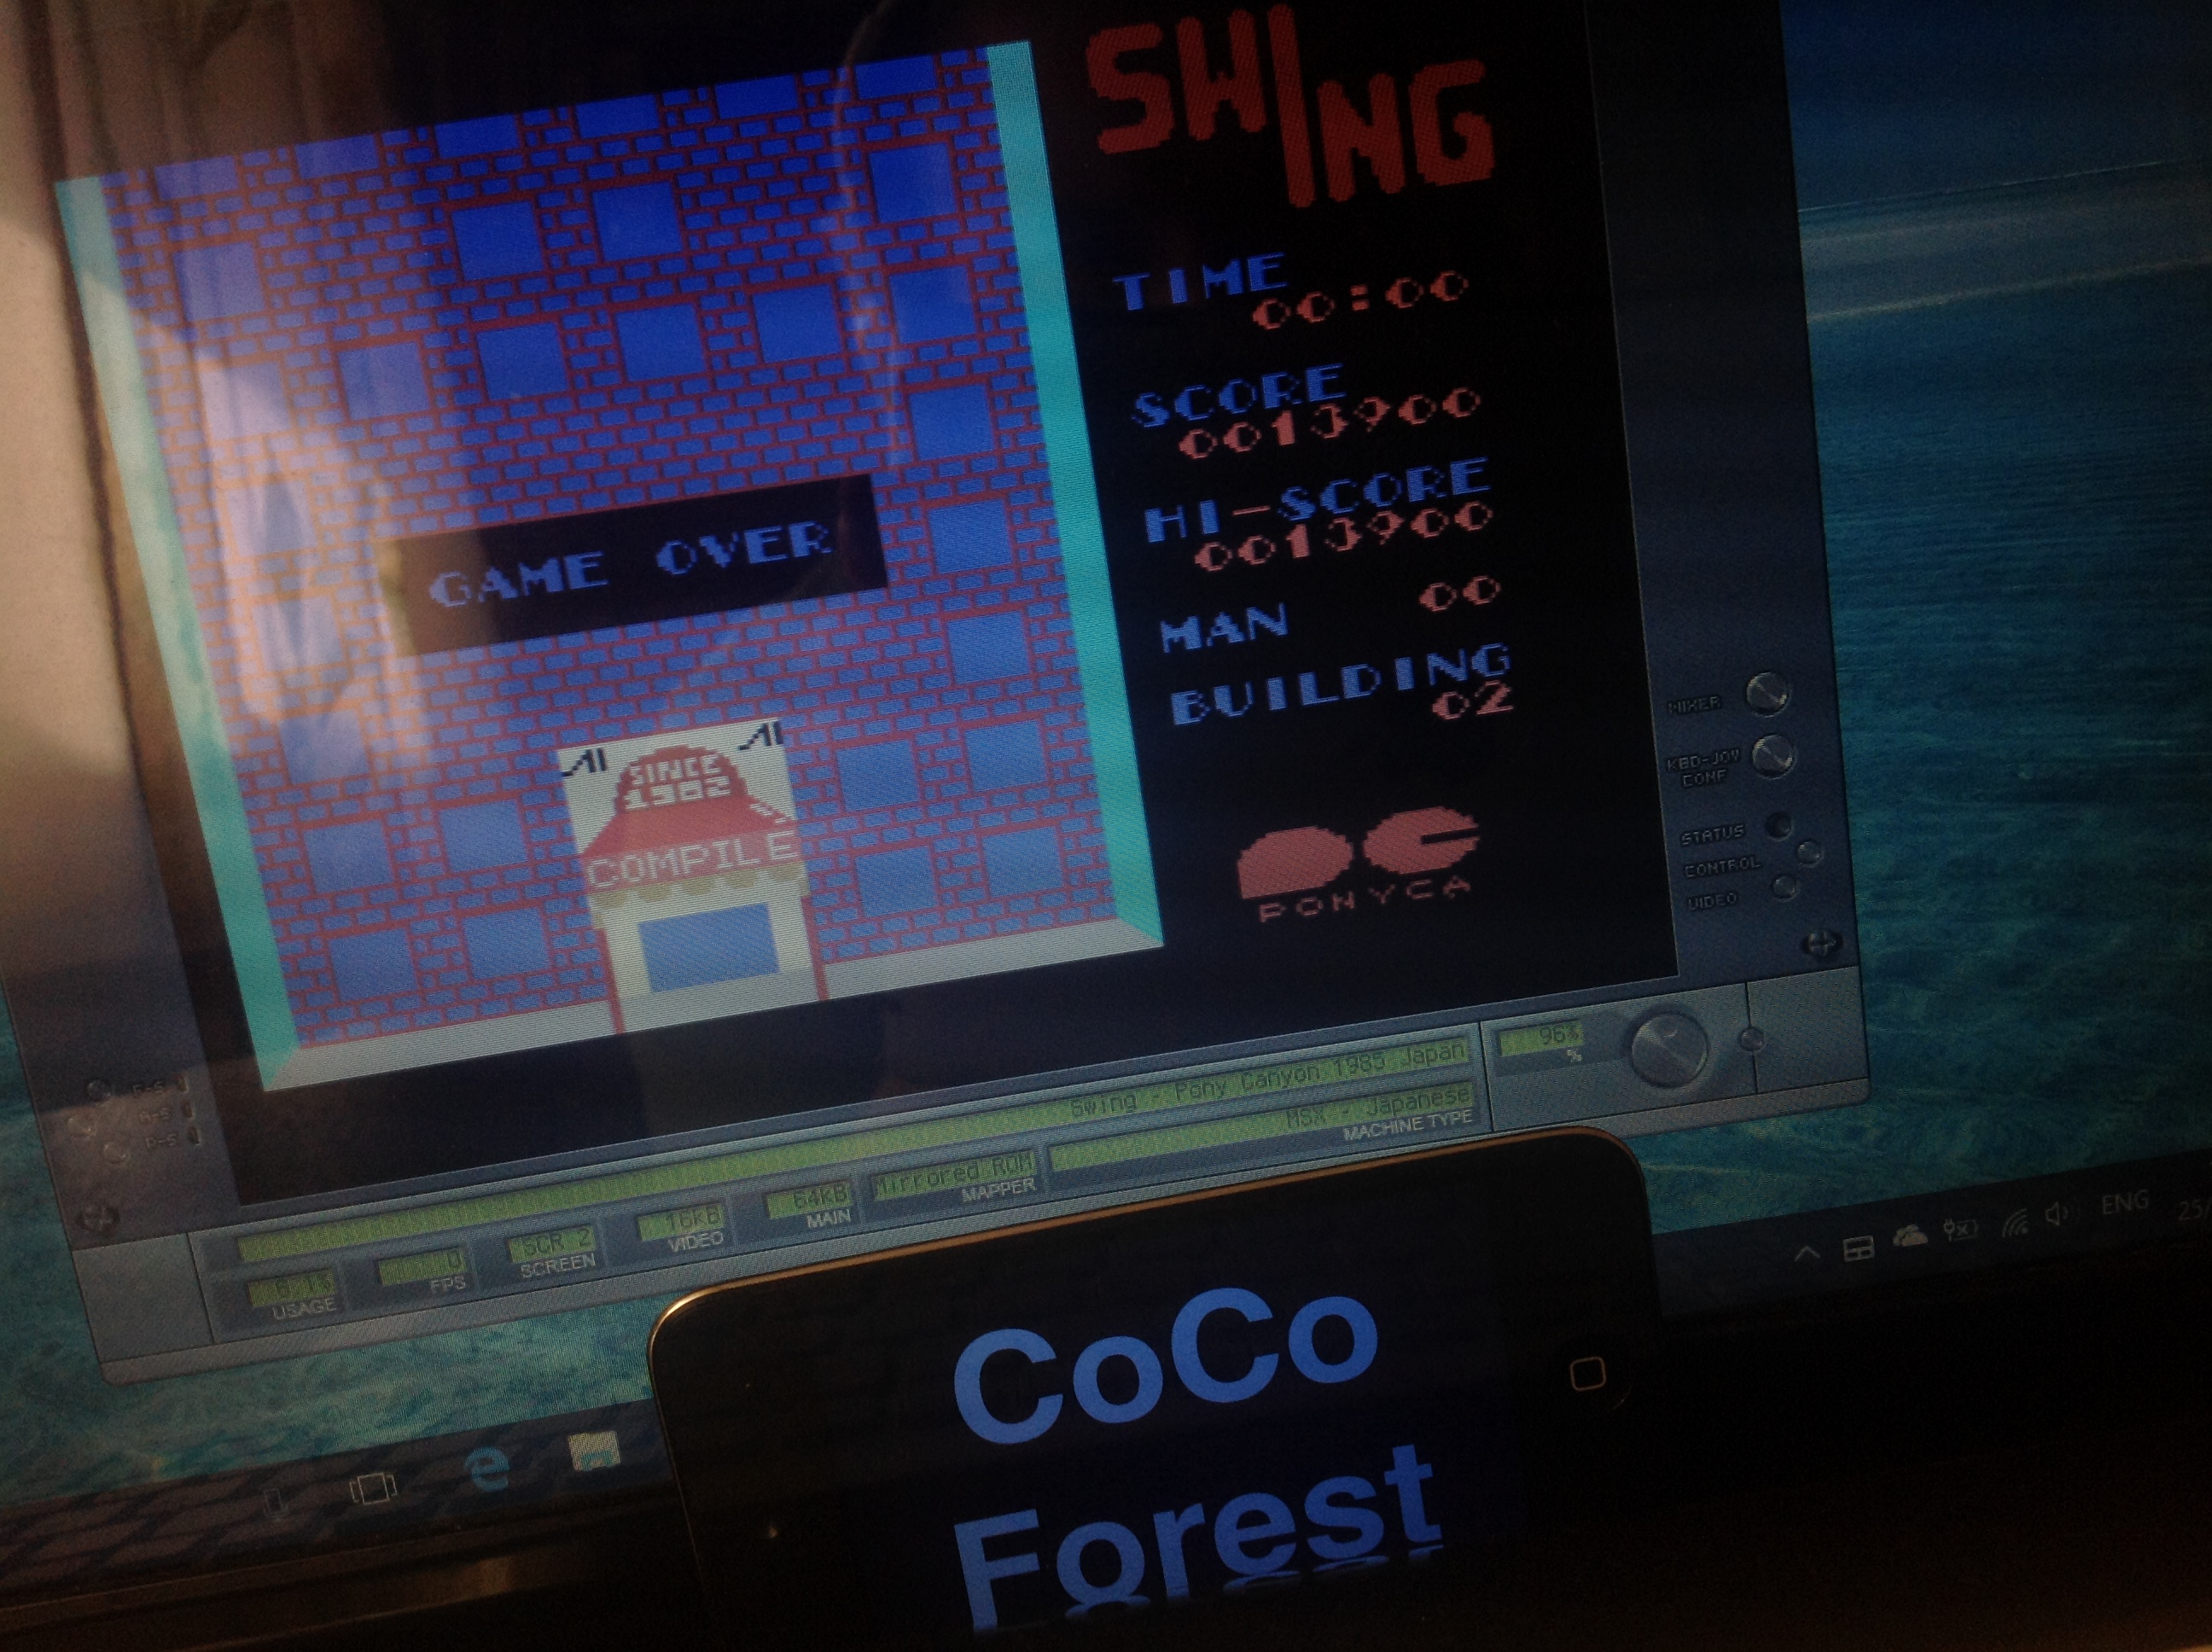 CoCoForest: Mr Swing of the Window Cleaning Company (MSX Emulated) 13,900 points on 2017-08-25 08:04:45